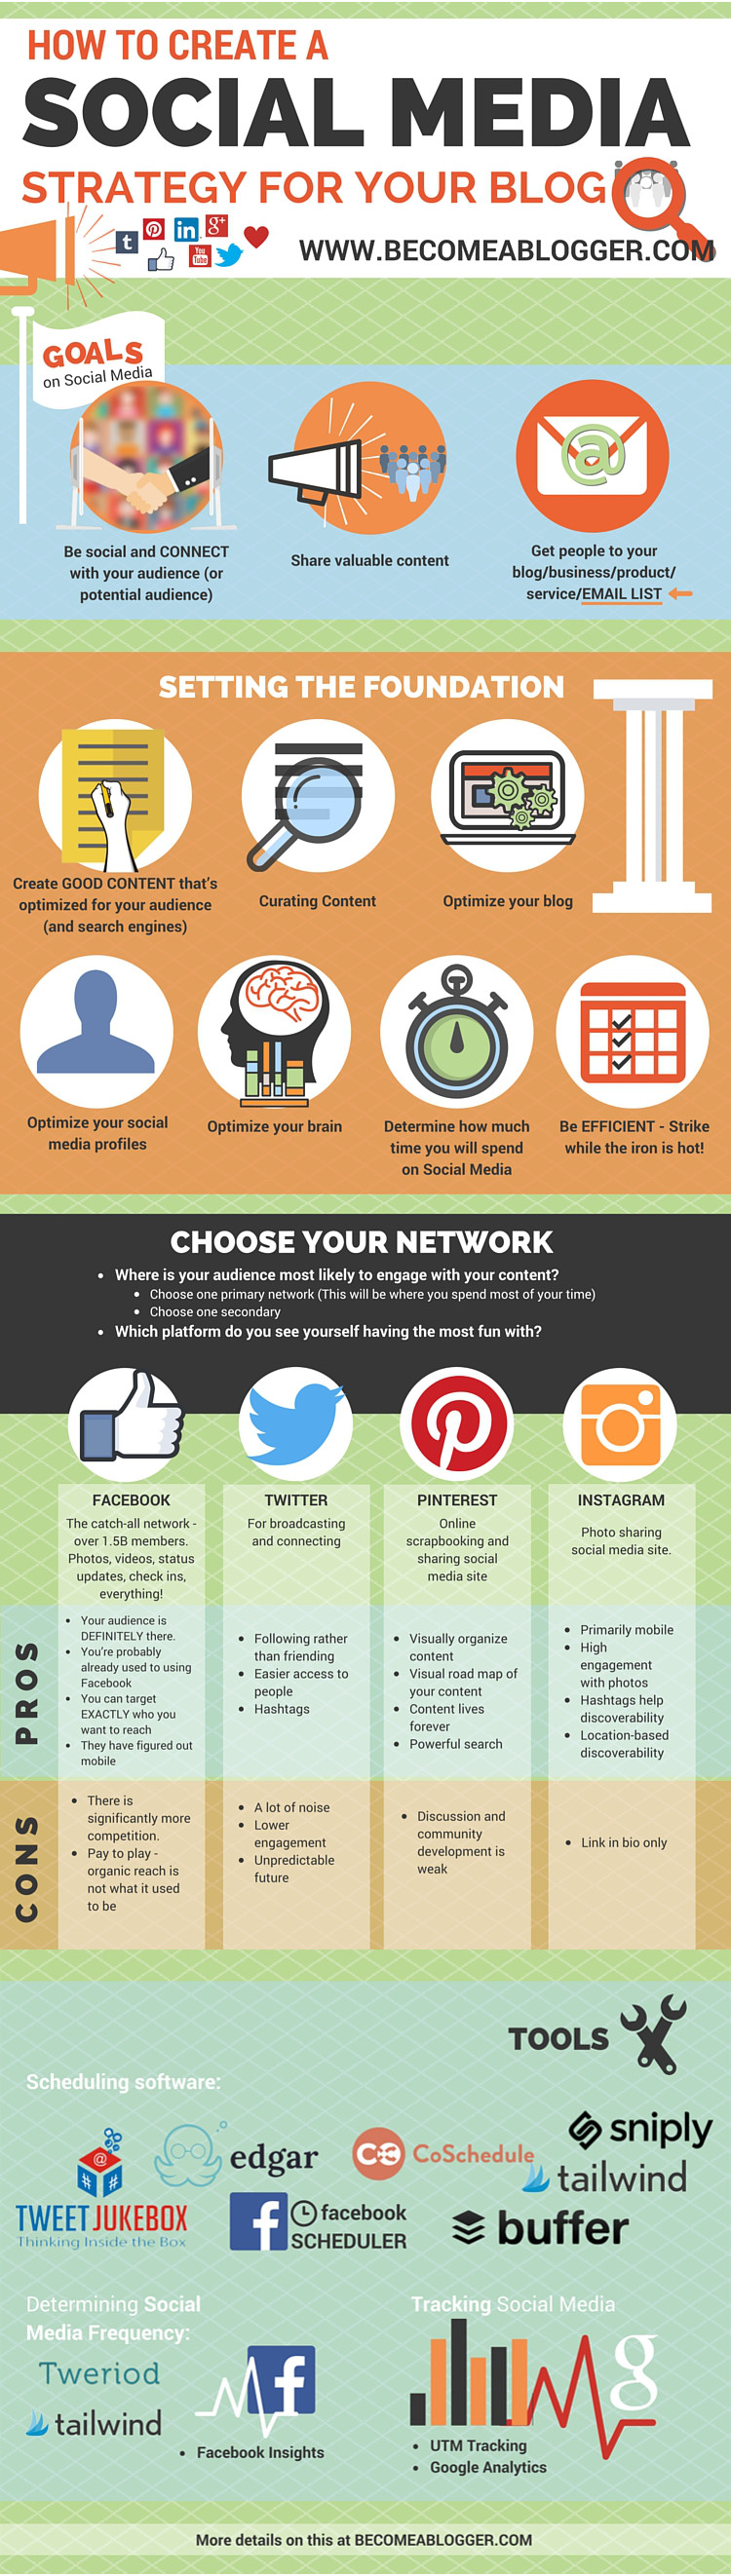 248_Social Media Strategy_Infographic_1